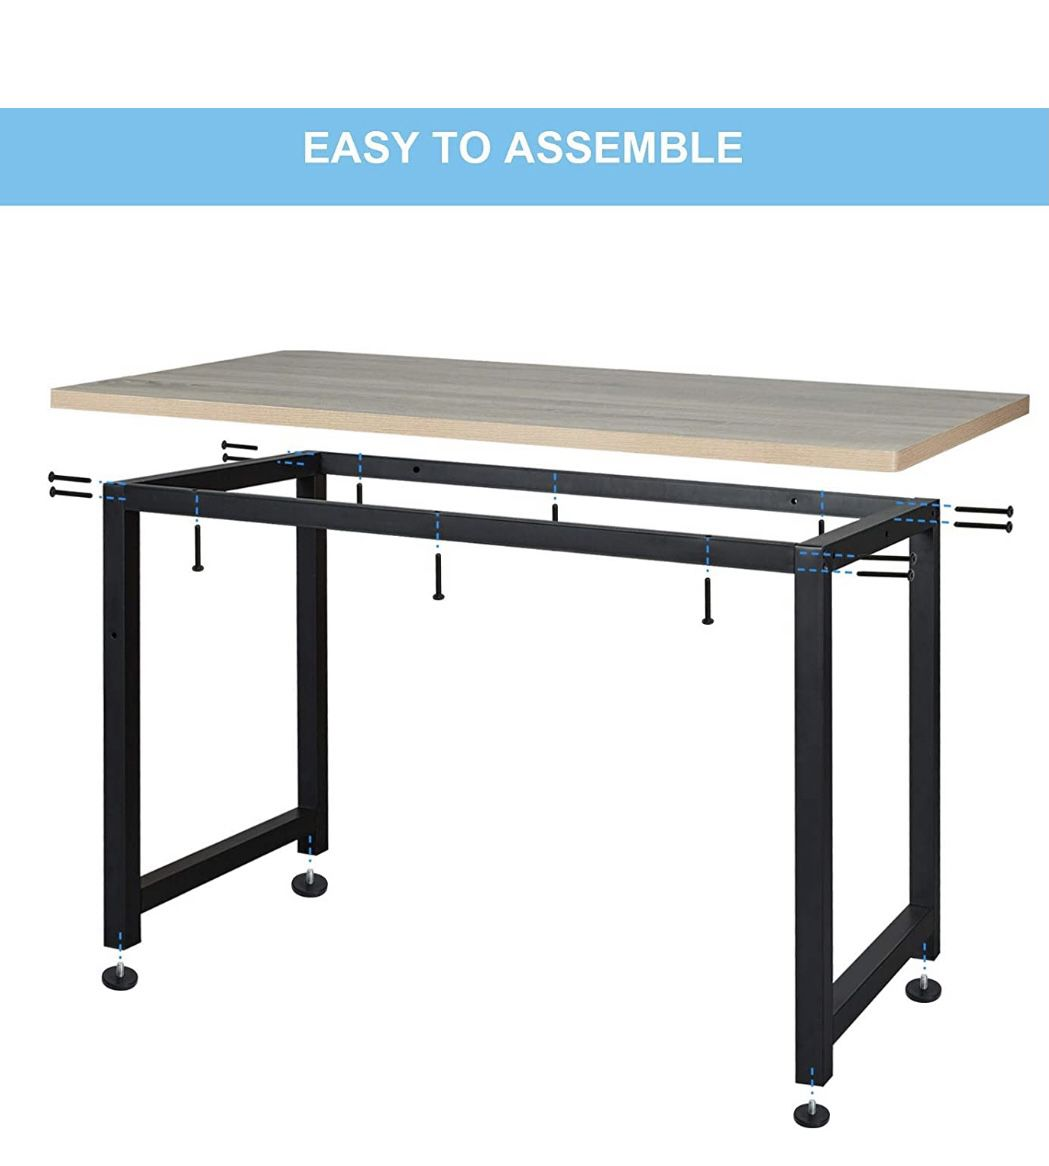 Computer Desk 47 Inch Modern Sturdy Office Desk, Heavy Duty Writing Study Desk for Home Office with Extra Thickened Frame & Strong Legs (Black+White)